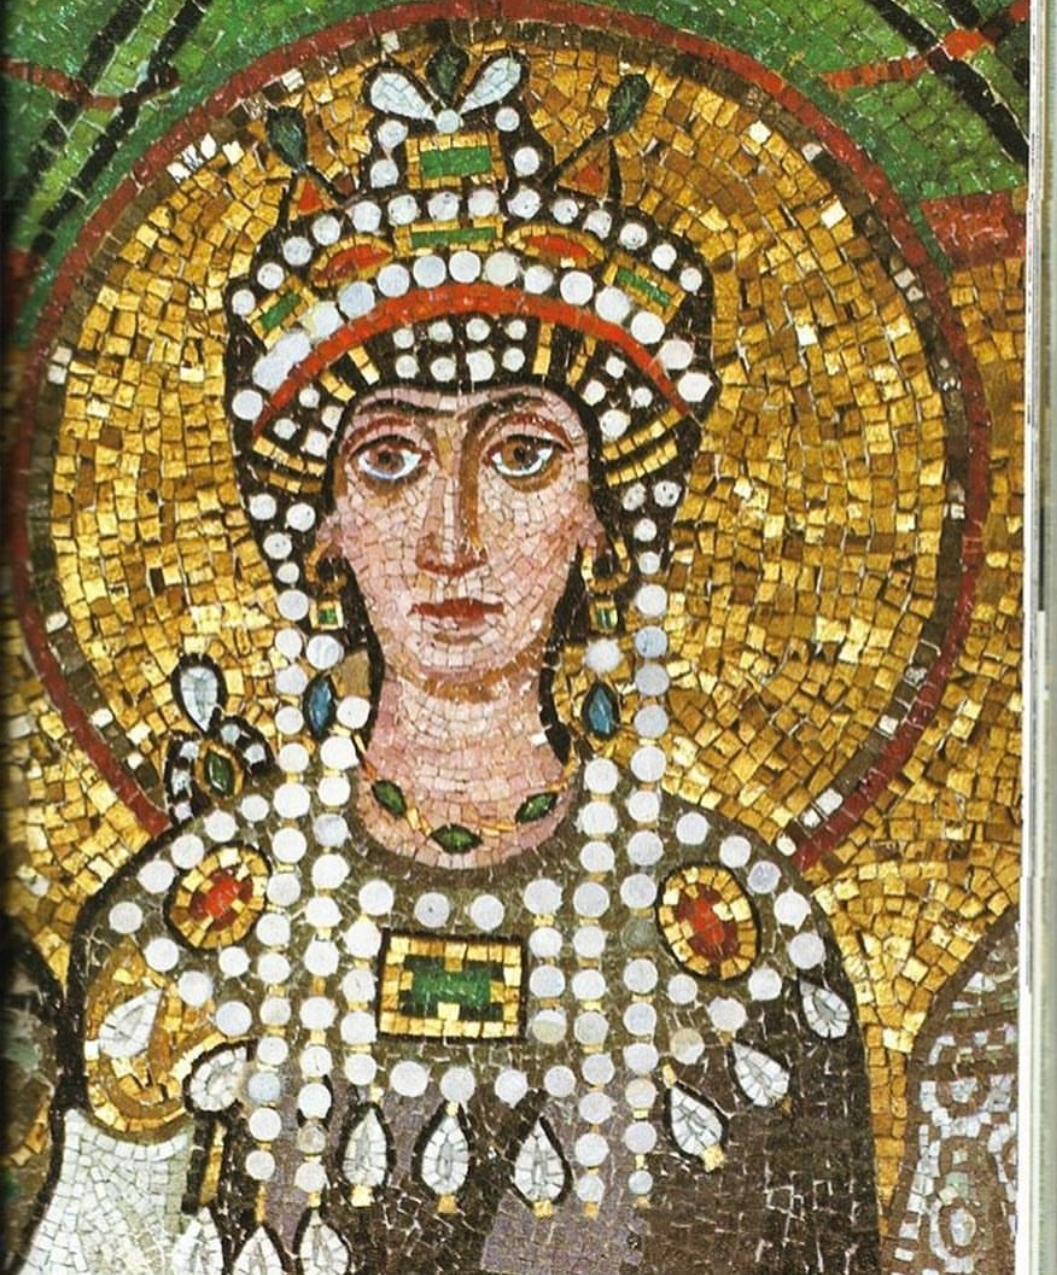 Theodora (500-548), Byzantine Empress and Wife of Emperor Justinian I, Detail of Byzantine Mosaic, Basilica of San Vitale, Ravenna, Italy.